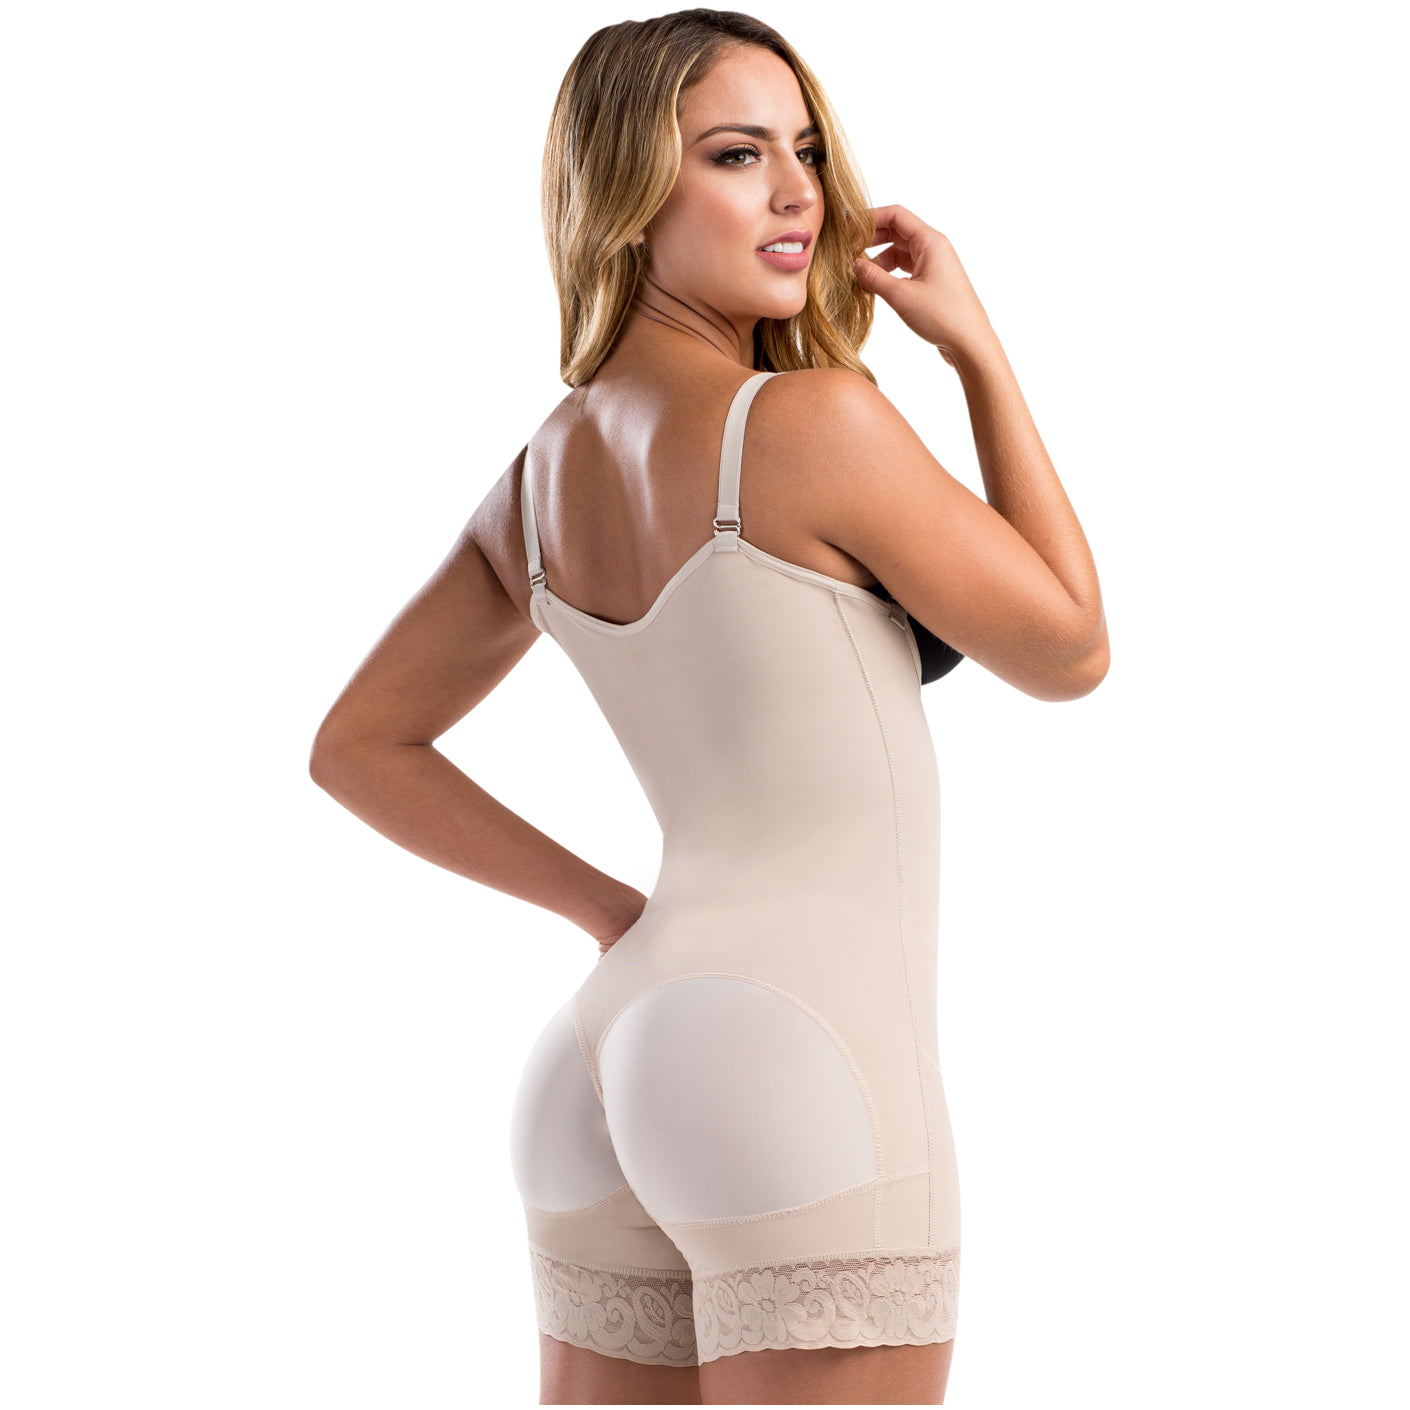 LT.Rose 21125 Colombian Butt Lifting Shapewear Bodysuit